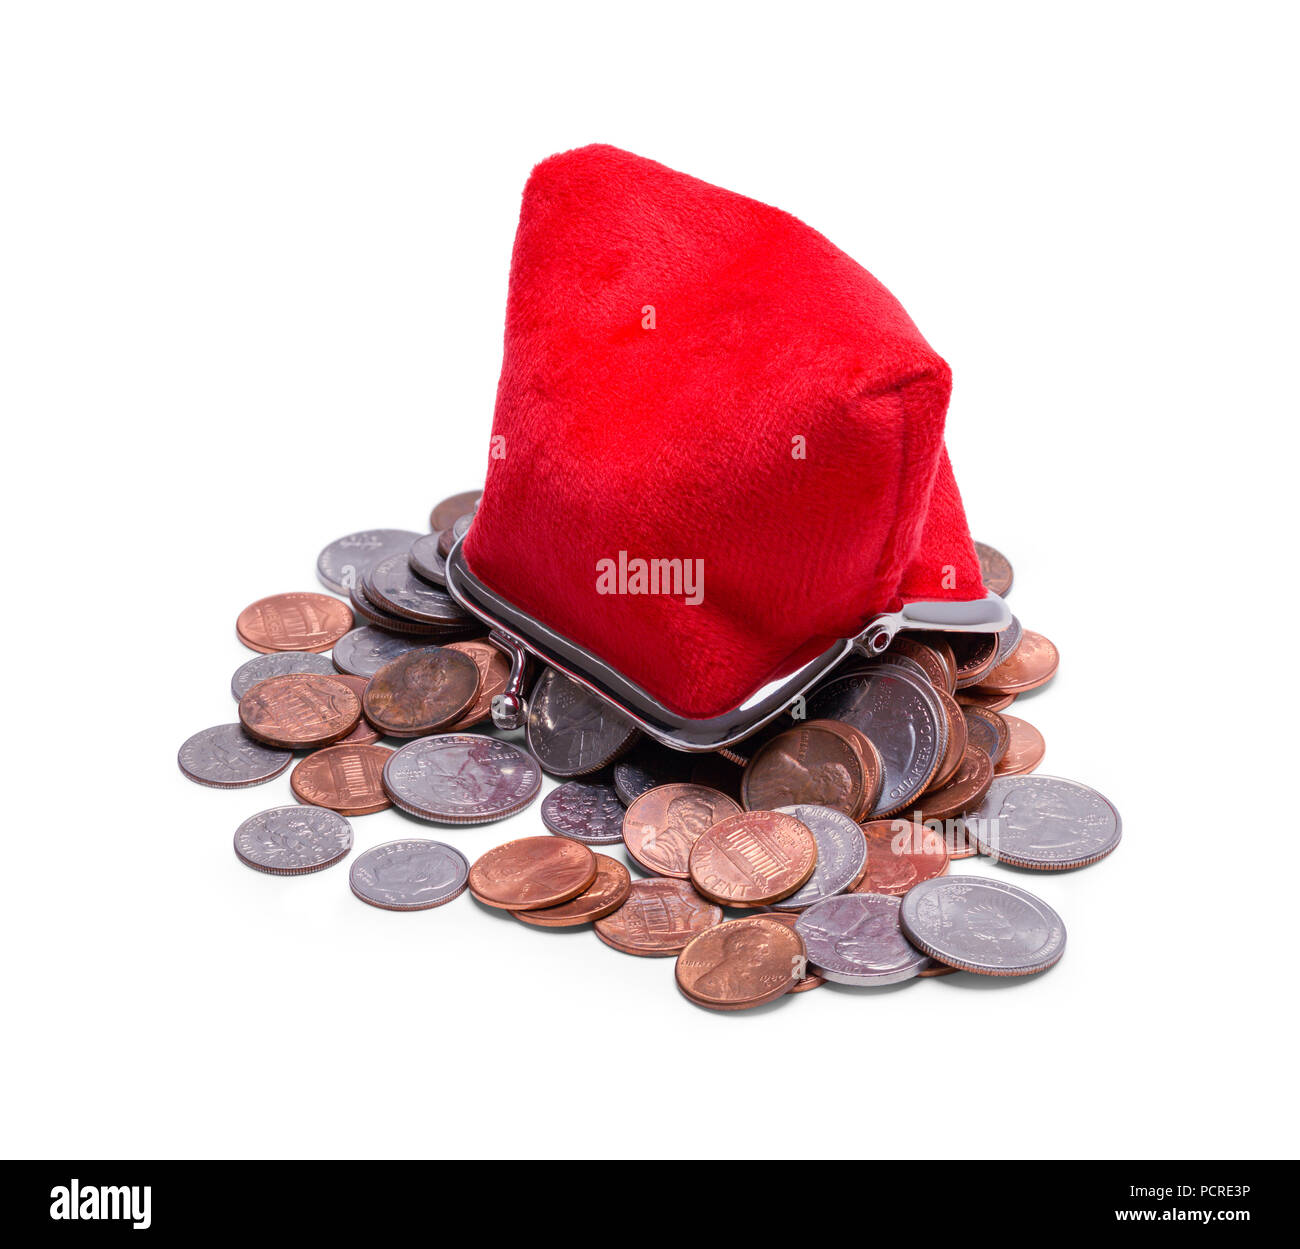 Upside Down Red Coin Purse Spilt Out Isolated on White. - Stock Image